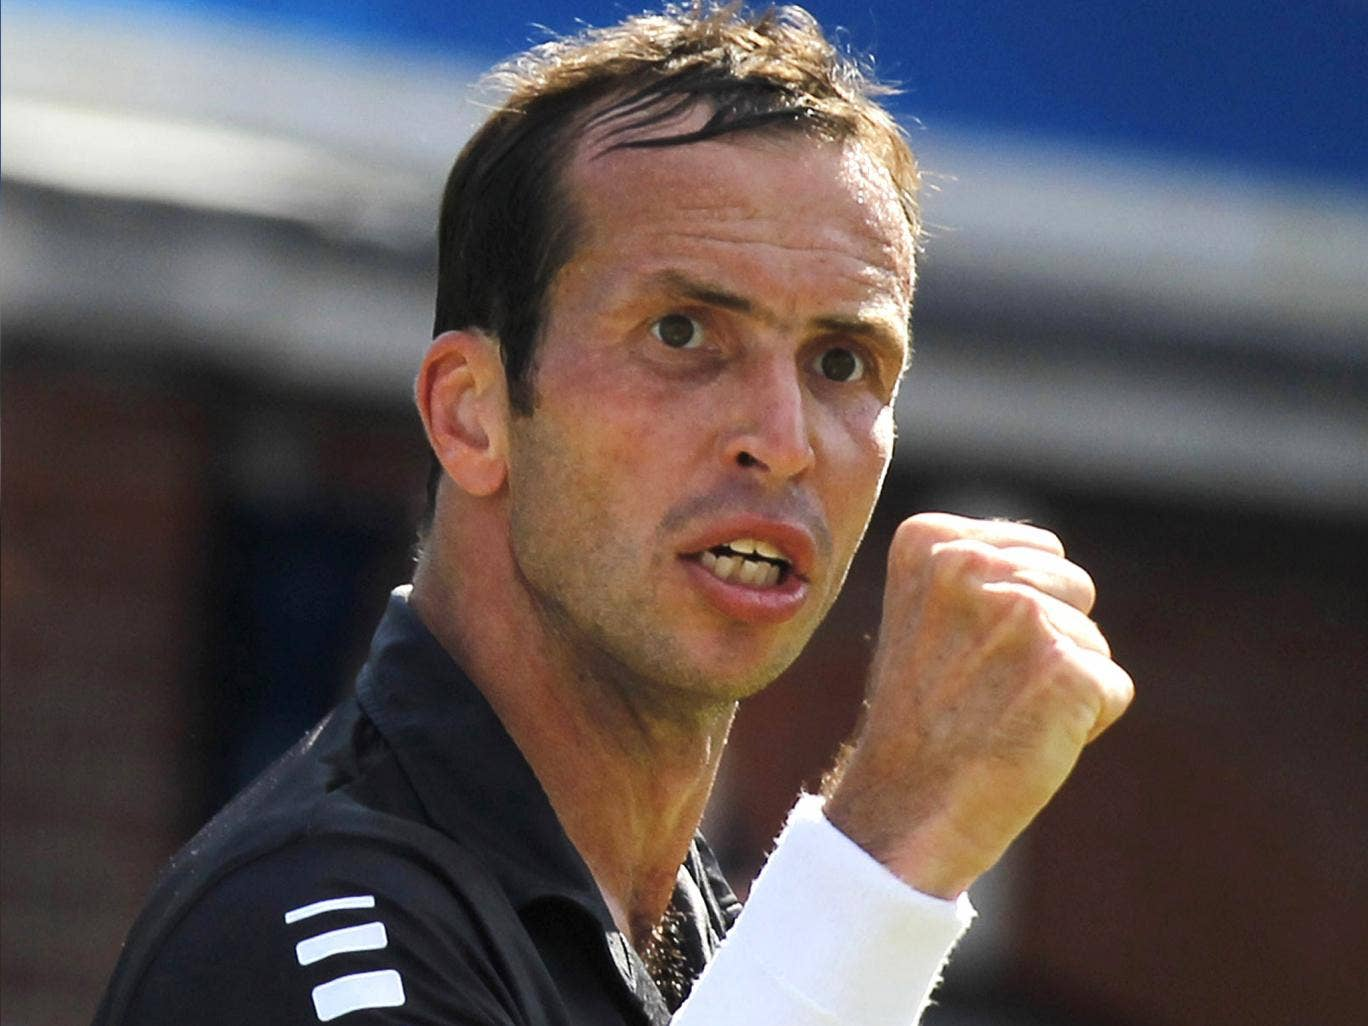 Radek Stepanek beats Andy Murray a fortnight ago – but he will have to come up with some surprises against Novak Djokovic